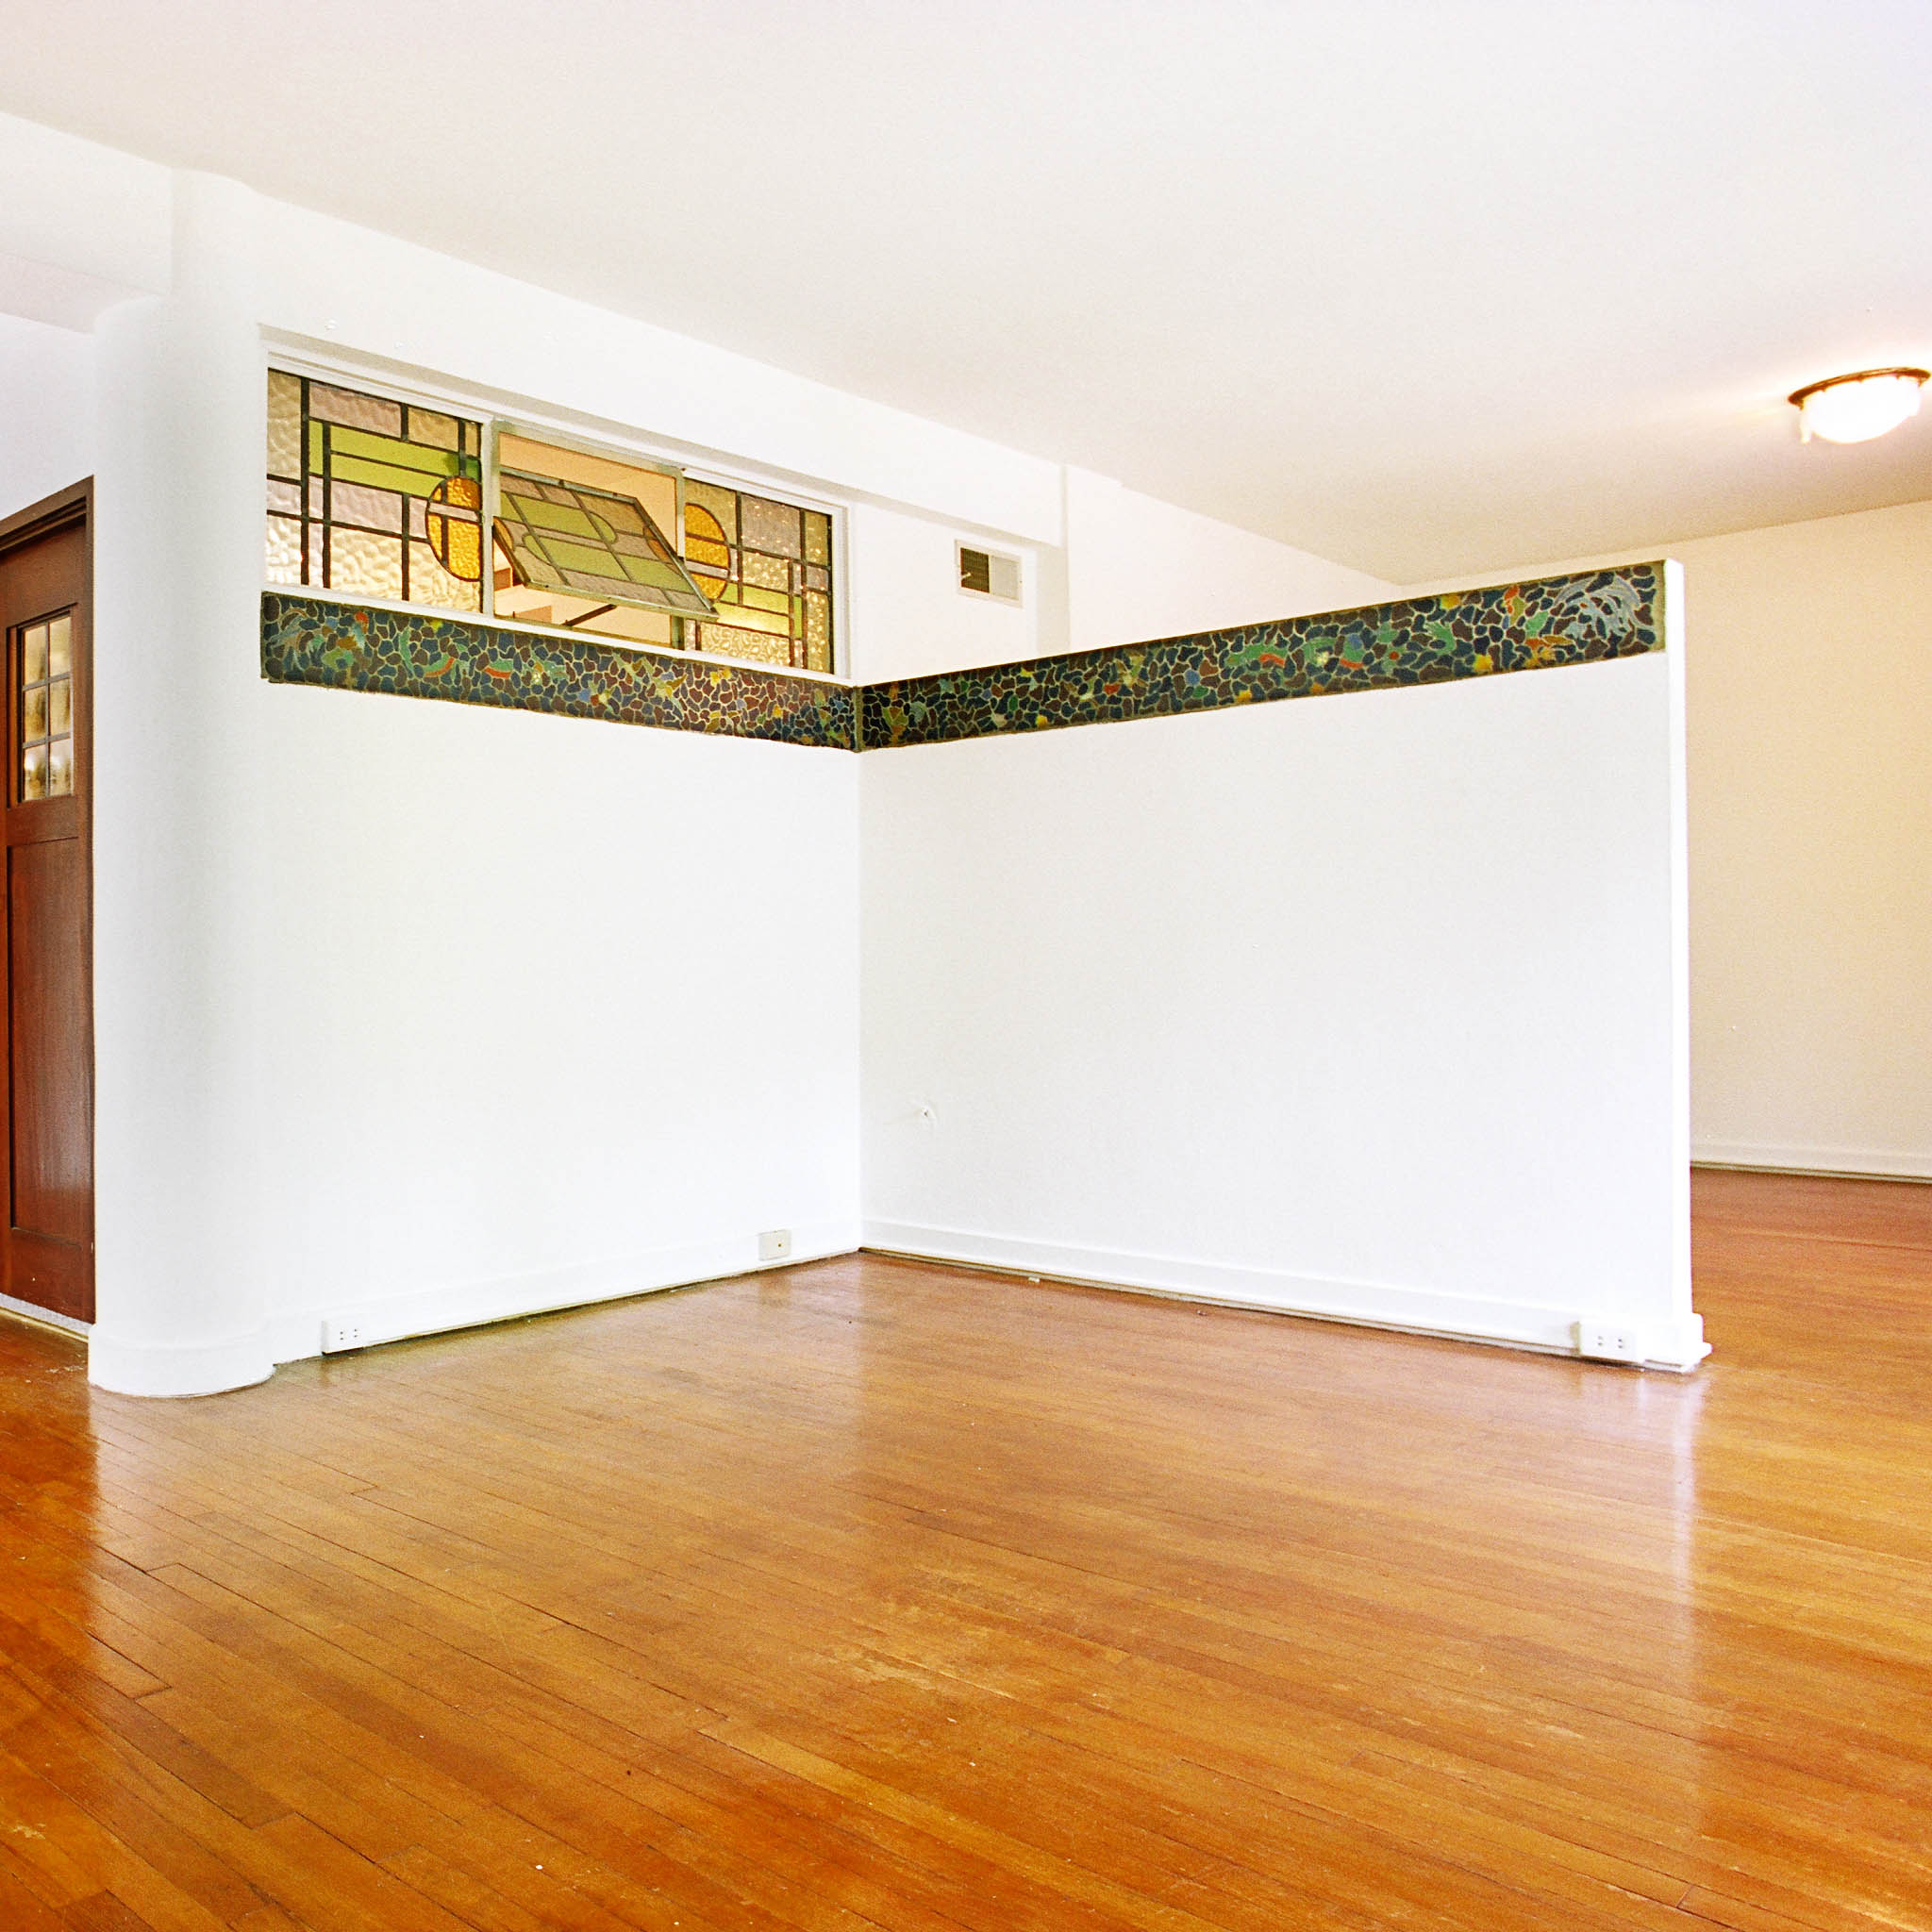 interior of 340 S. Highland Ave, Apt. 3A 4